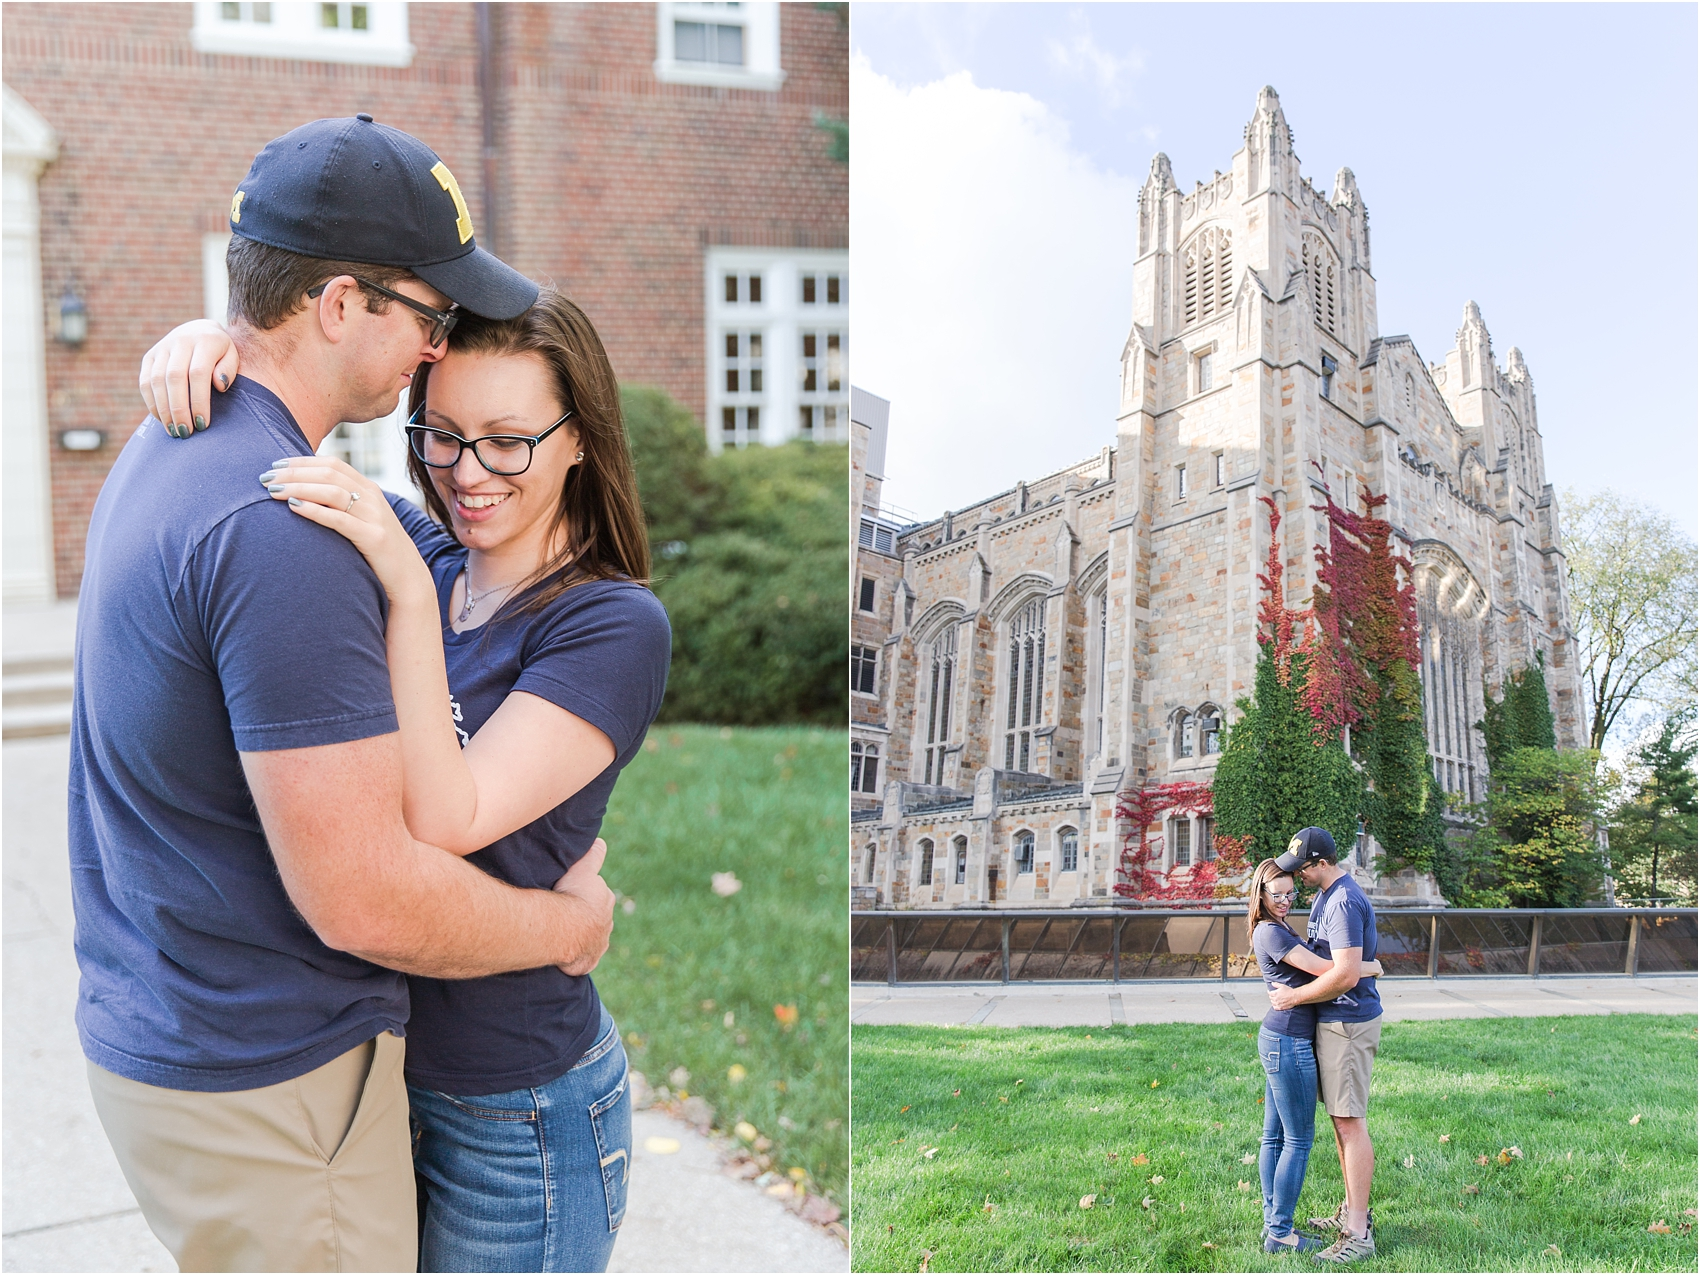 classic-fall-engagement-photos-at-the-university-of-michigan-in-ann-arbor-mi-by-courtney-carolyn-photography_0018.jpg